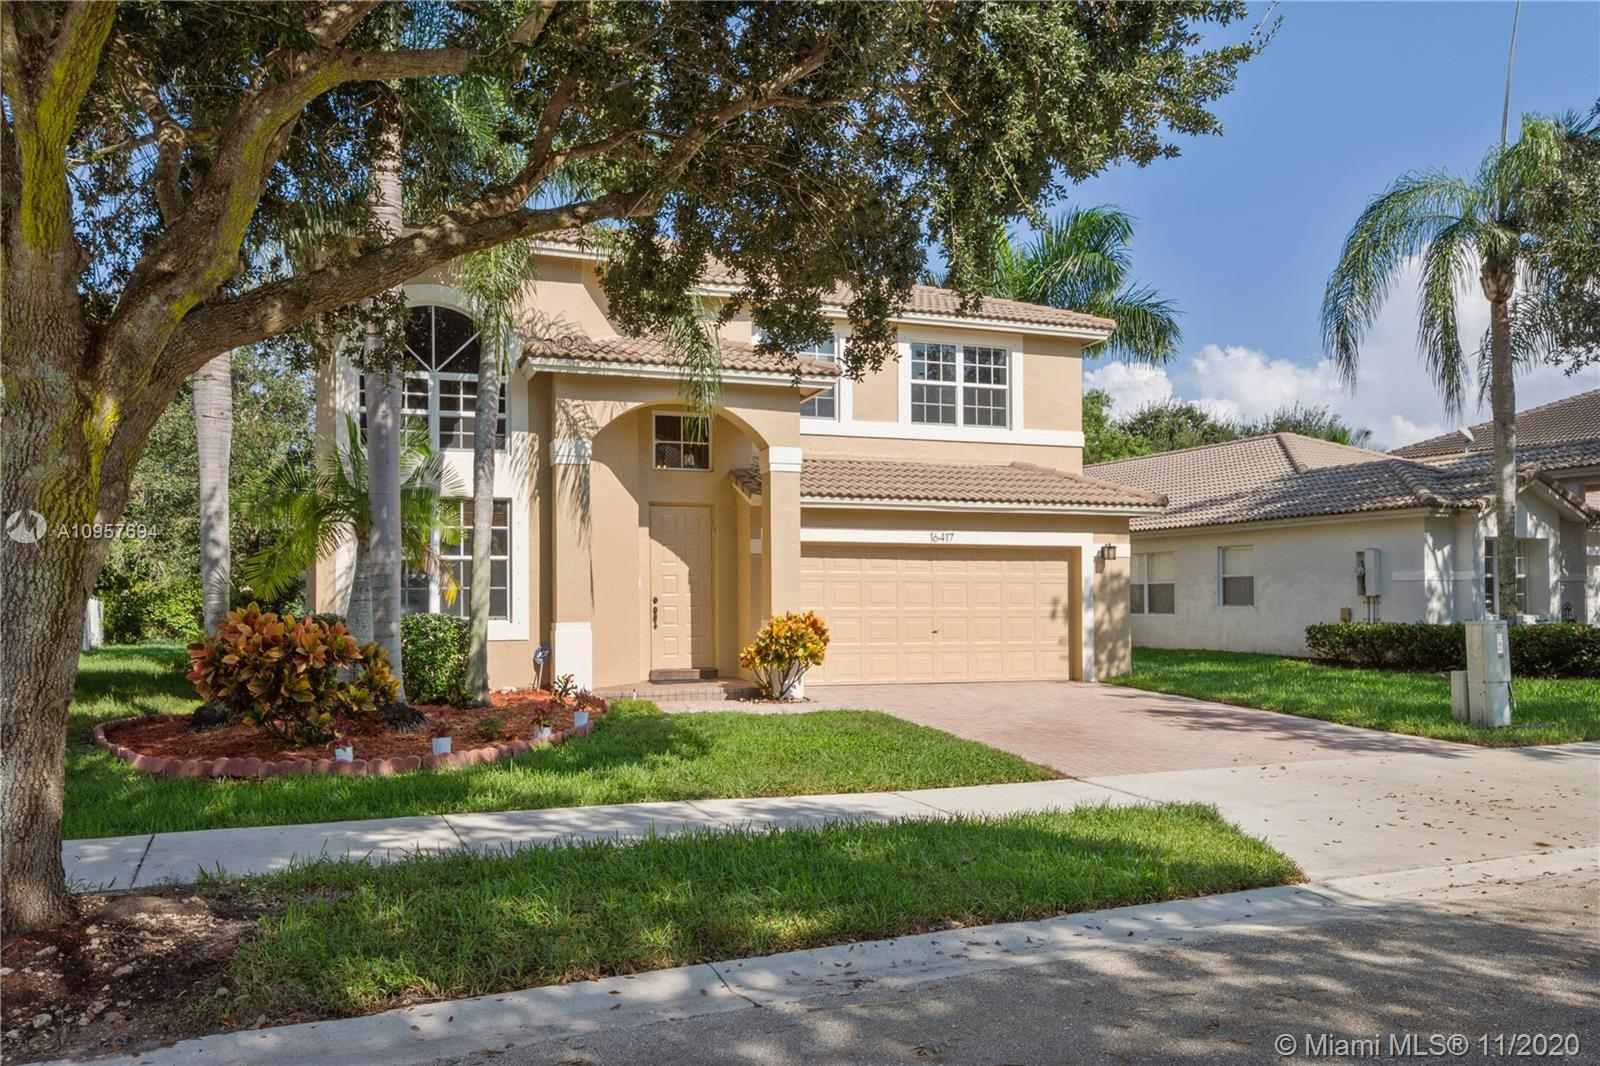 Just listed in the prestigiouscommunity of Emerald Estates. Built by Lennar with great parks and amenities and A+ school district. Peaceful 24hr guard-gated in the amazing City of Weston. This is the Jade Model with an open floor plan featuring 2812Sqft A/C with 4 bd, 3 bth & large loft, 2 car garages. The 1st-floor bedroom is perfect for guests/office and loft is versatile. New impact windows on 2nd floor and hurricane panels for 1st floor. Recentlypainted inside, including garage floor, renovated white kitchen, newer appliances, & granite countertops. Laminate flooring on stairs and second floor. Newer water heater. With private lot and stunning garden views. HOA includes lawn maintenance,fertilizing, tree trimming, weeding, sprinklers, basic cable, alarm system, community pool & gym.